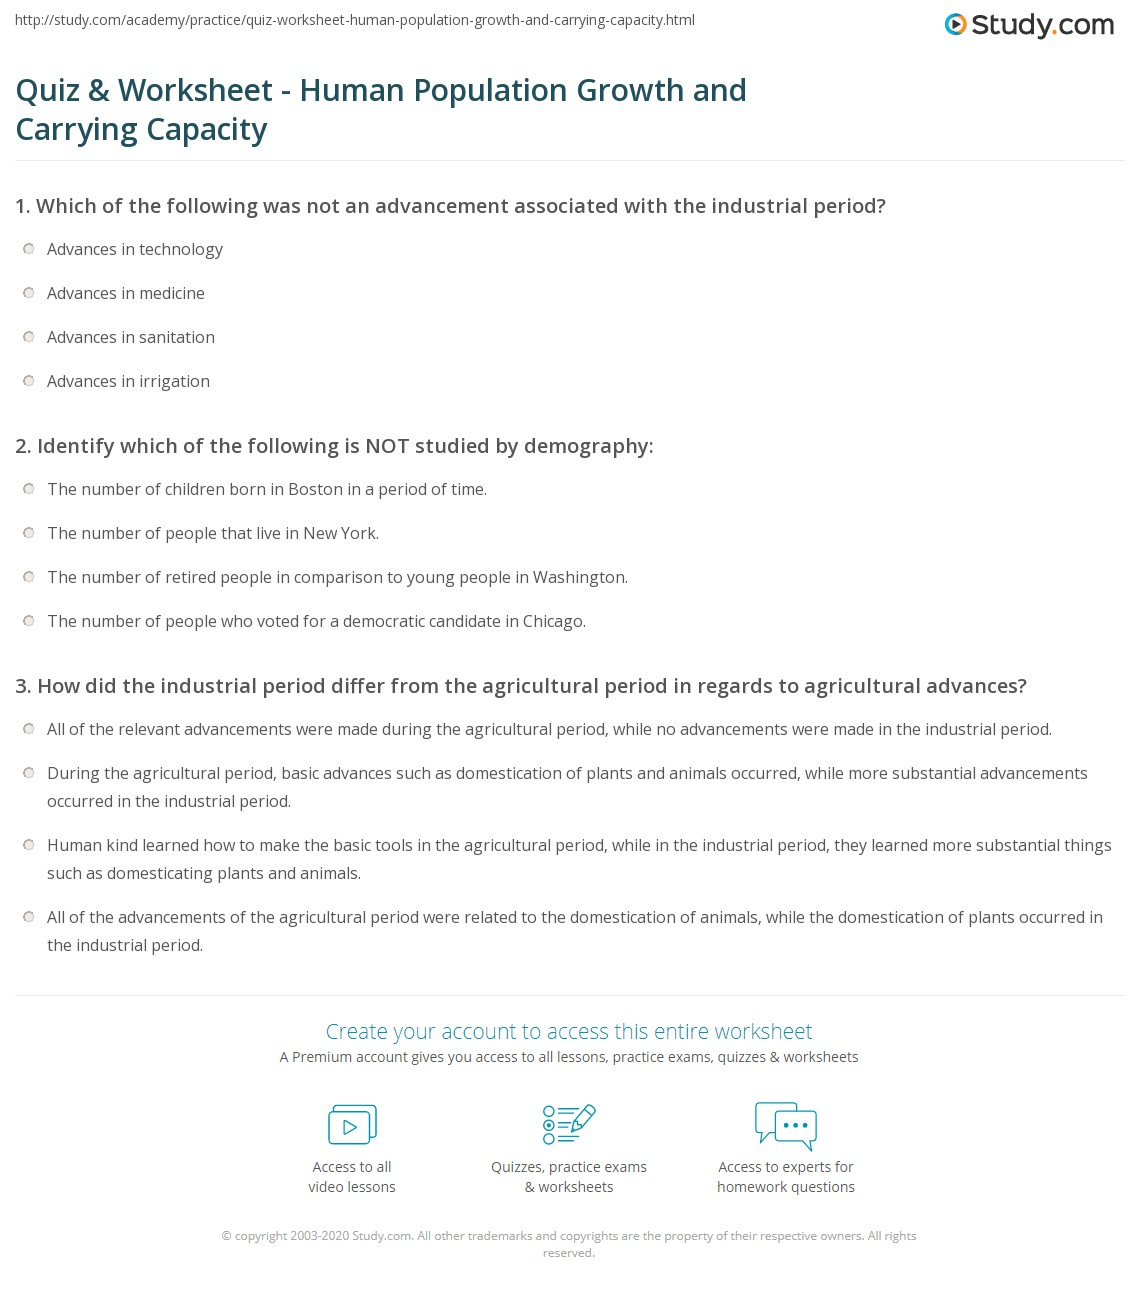 Free Worksheet Human Population Growth Worksheet quiz worksheet human population growth and carrying capacity print the history of worksheet